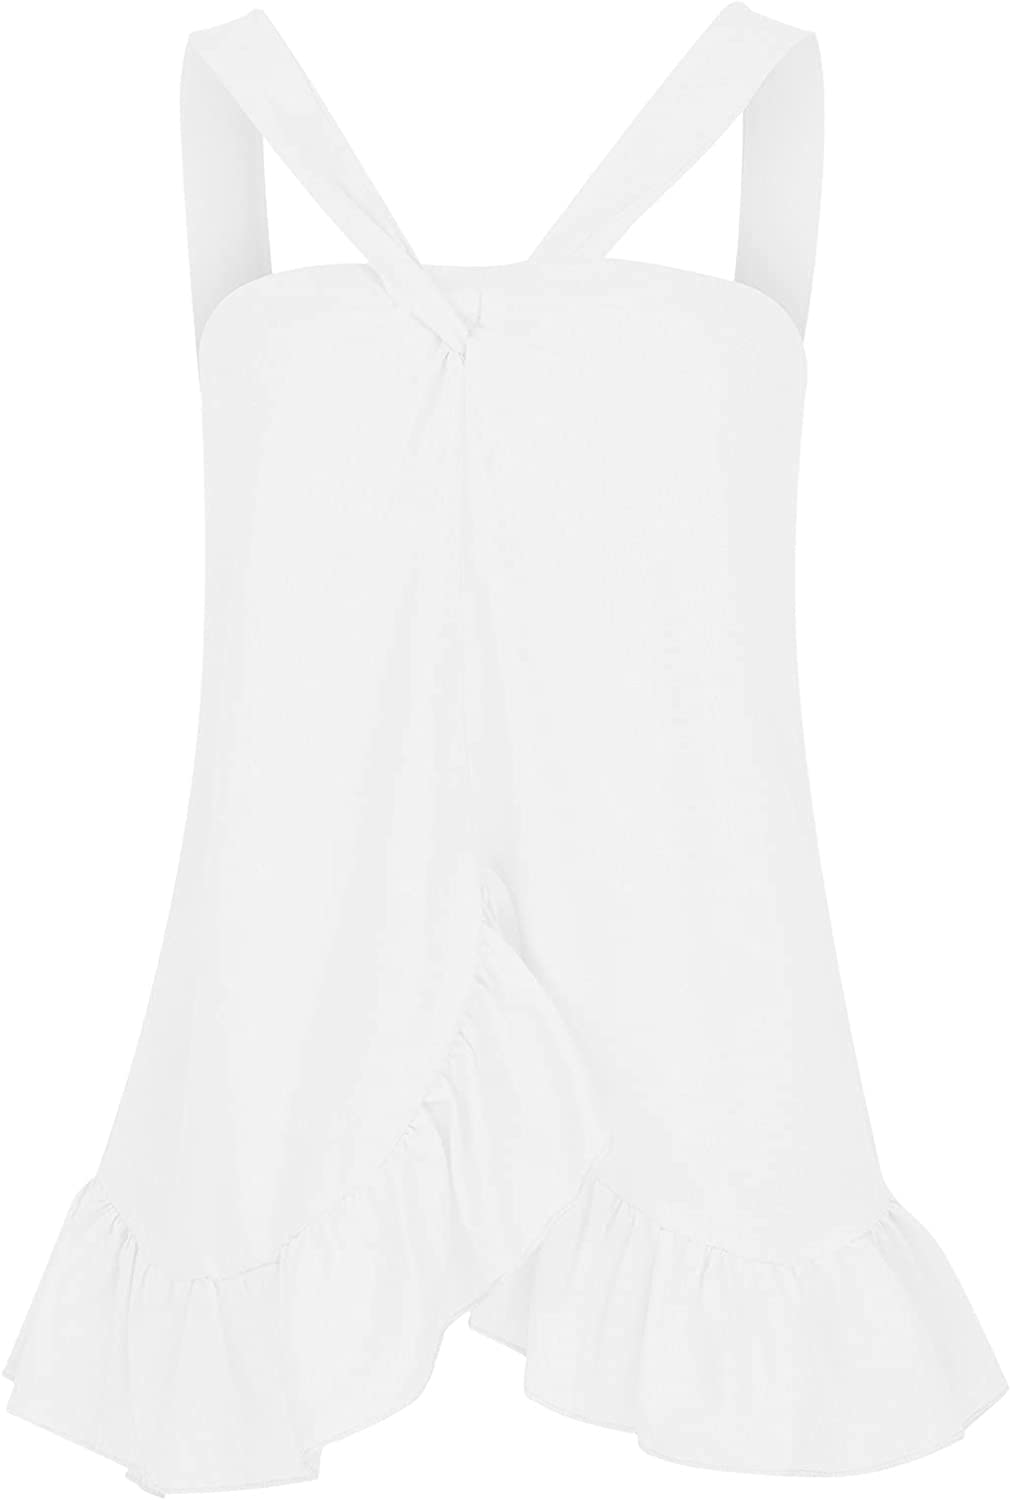 Women's Halter Ruffle Tops Summer Sleeveless Tank Tops Fashion Flowy Blouse Shirt Solid Color Pleated Cami Shirt